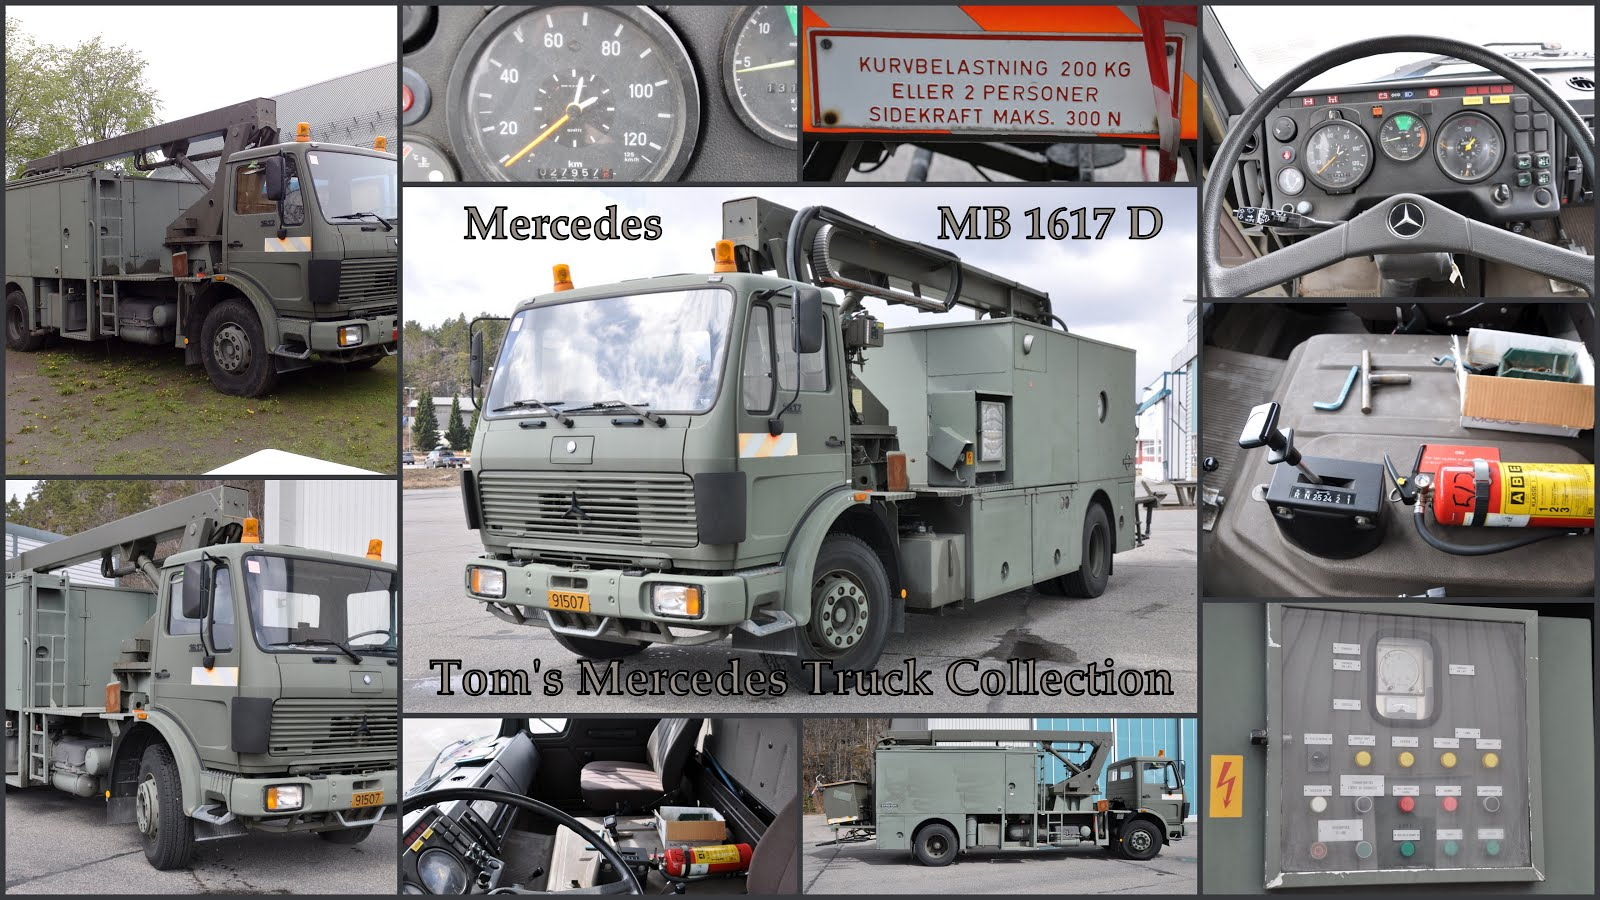 Mercedes MB 1617 D Army